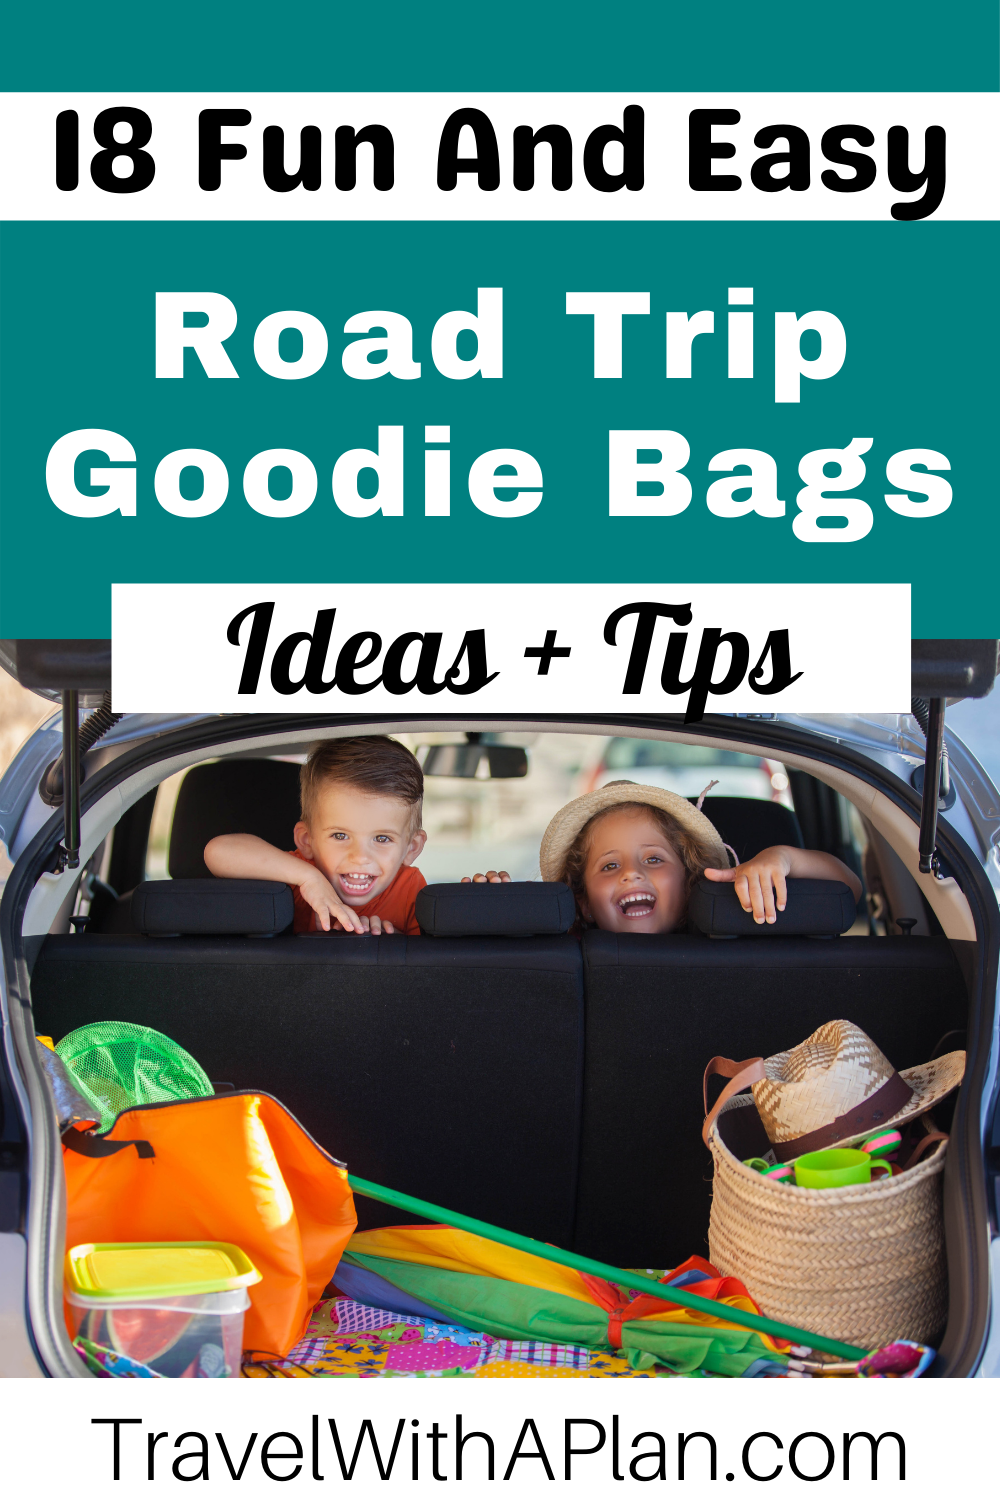 Click here to find out how to make fun and easy Road Trip Goodie Bags for your next family road trip!  Keep the kids surprised!  #familyroadtrip #familiytravel